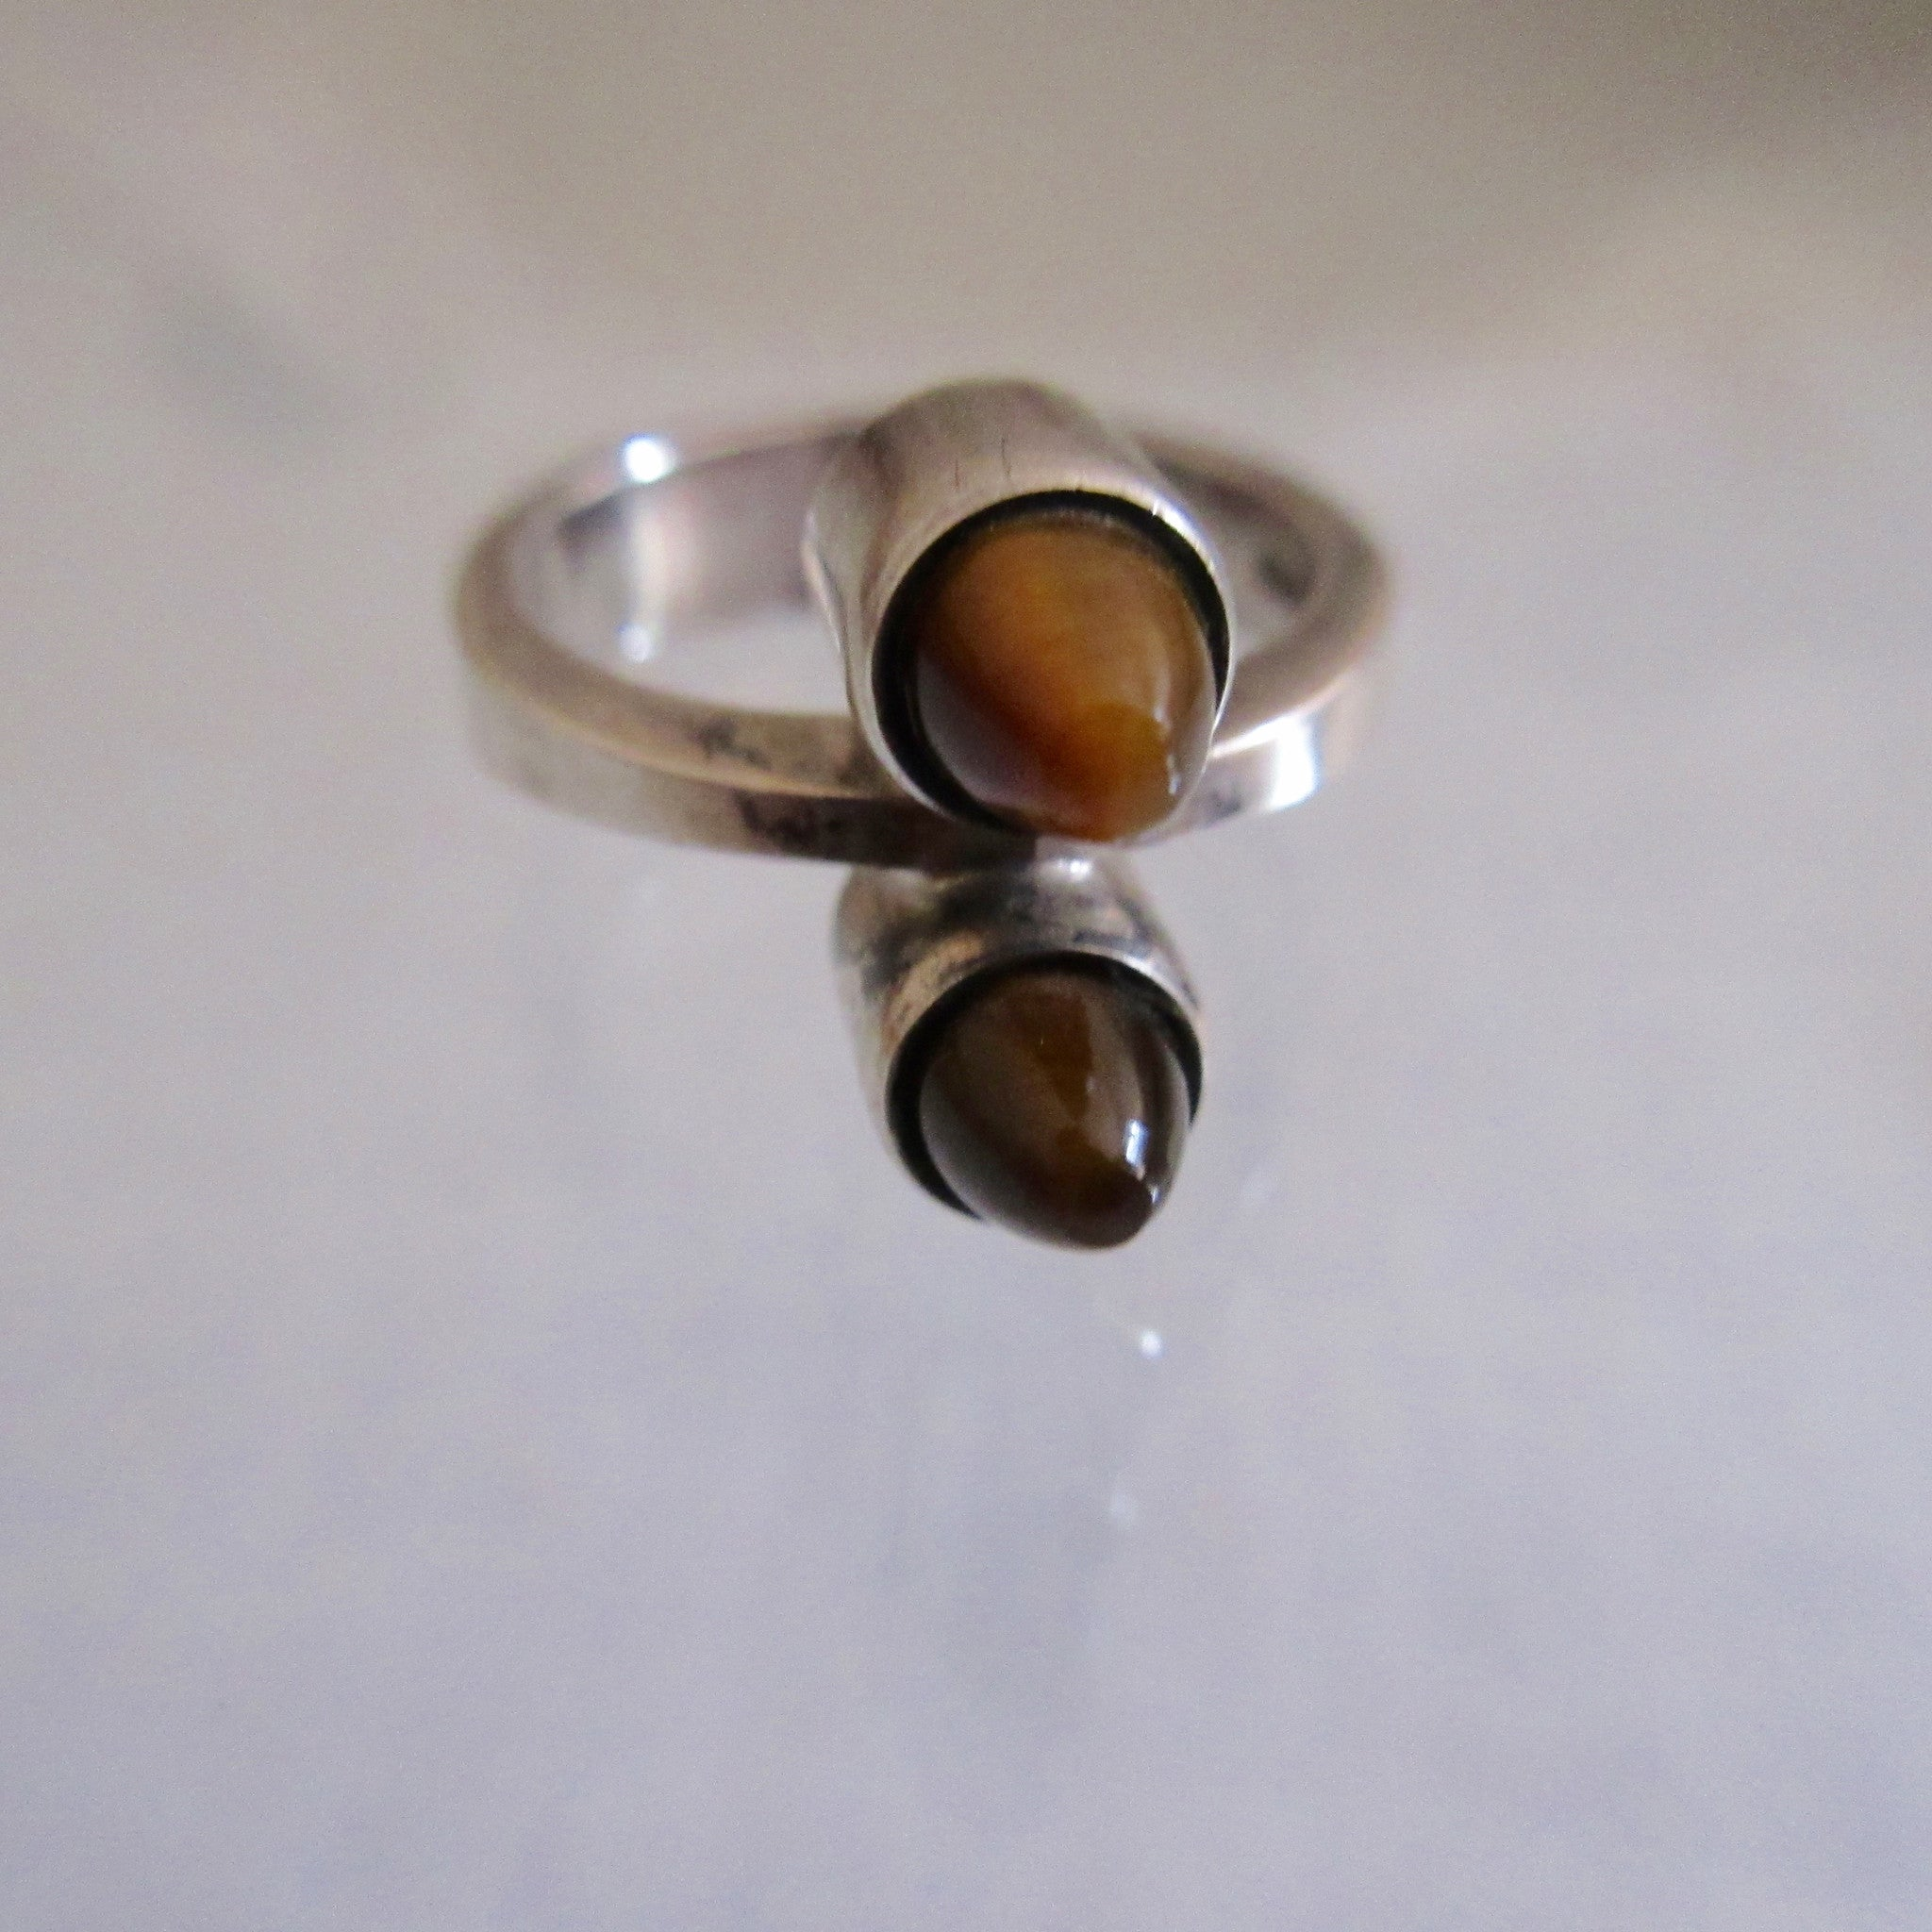 shop fokker rings tigers eye lord cilento sebastian ring coconut jpg signet